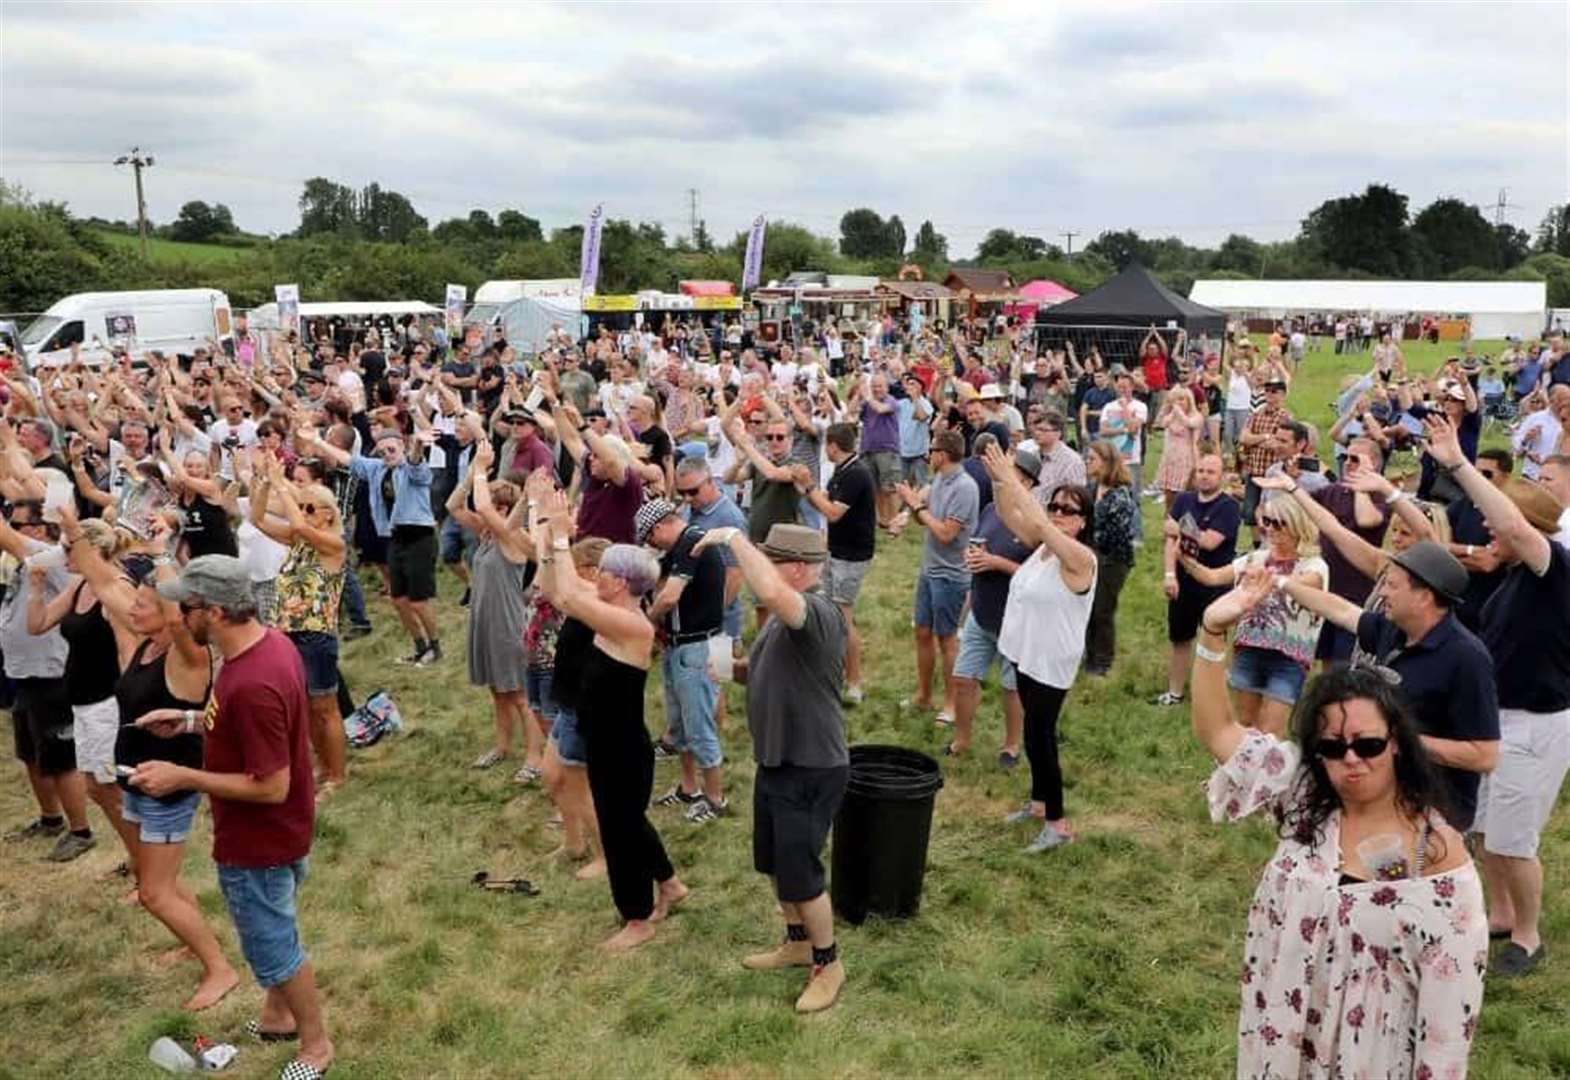 Stone Valley Festival will bring mod, ska, 60s, indie, northern soul, punk and soul to East Herts